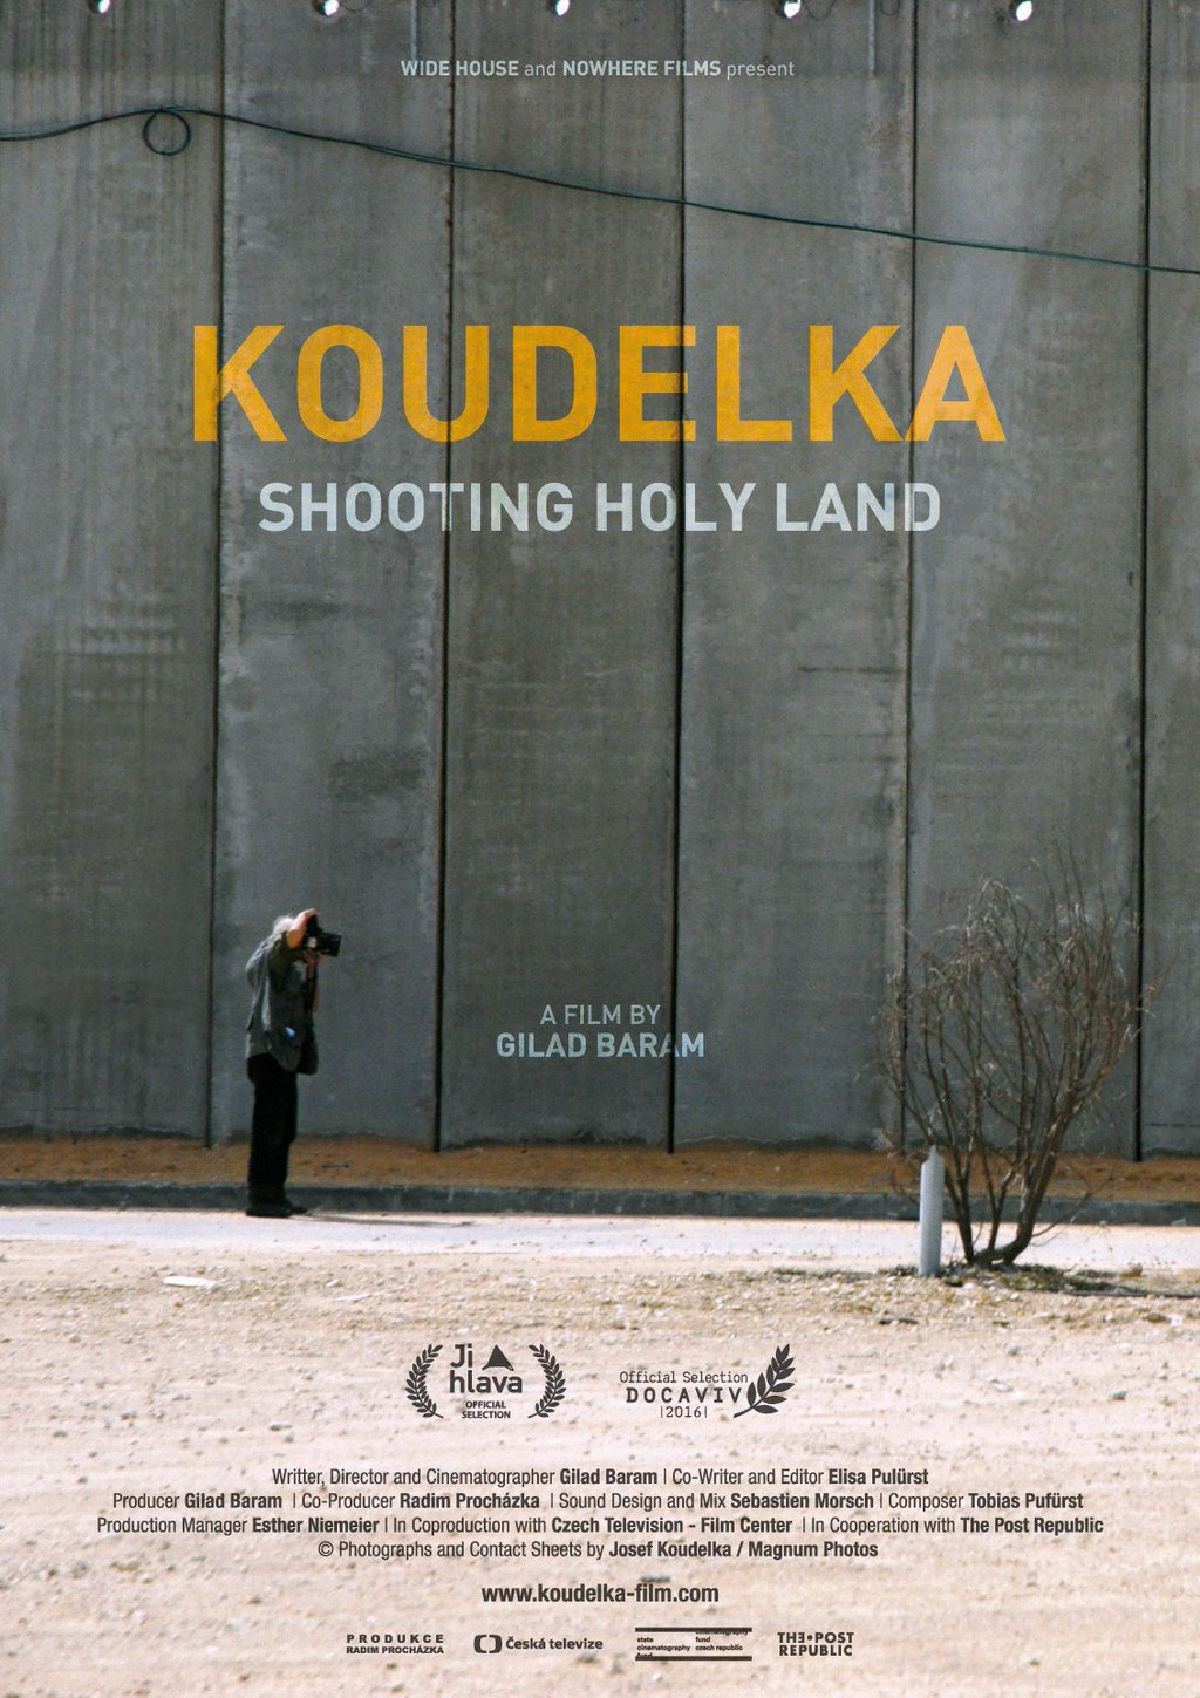 'Koudelka Shooting Holy Land' movie poster